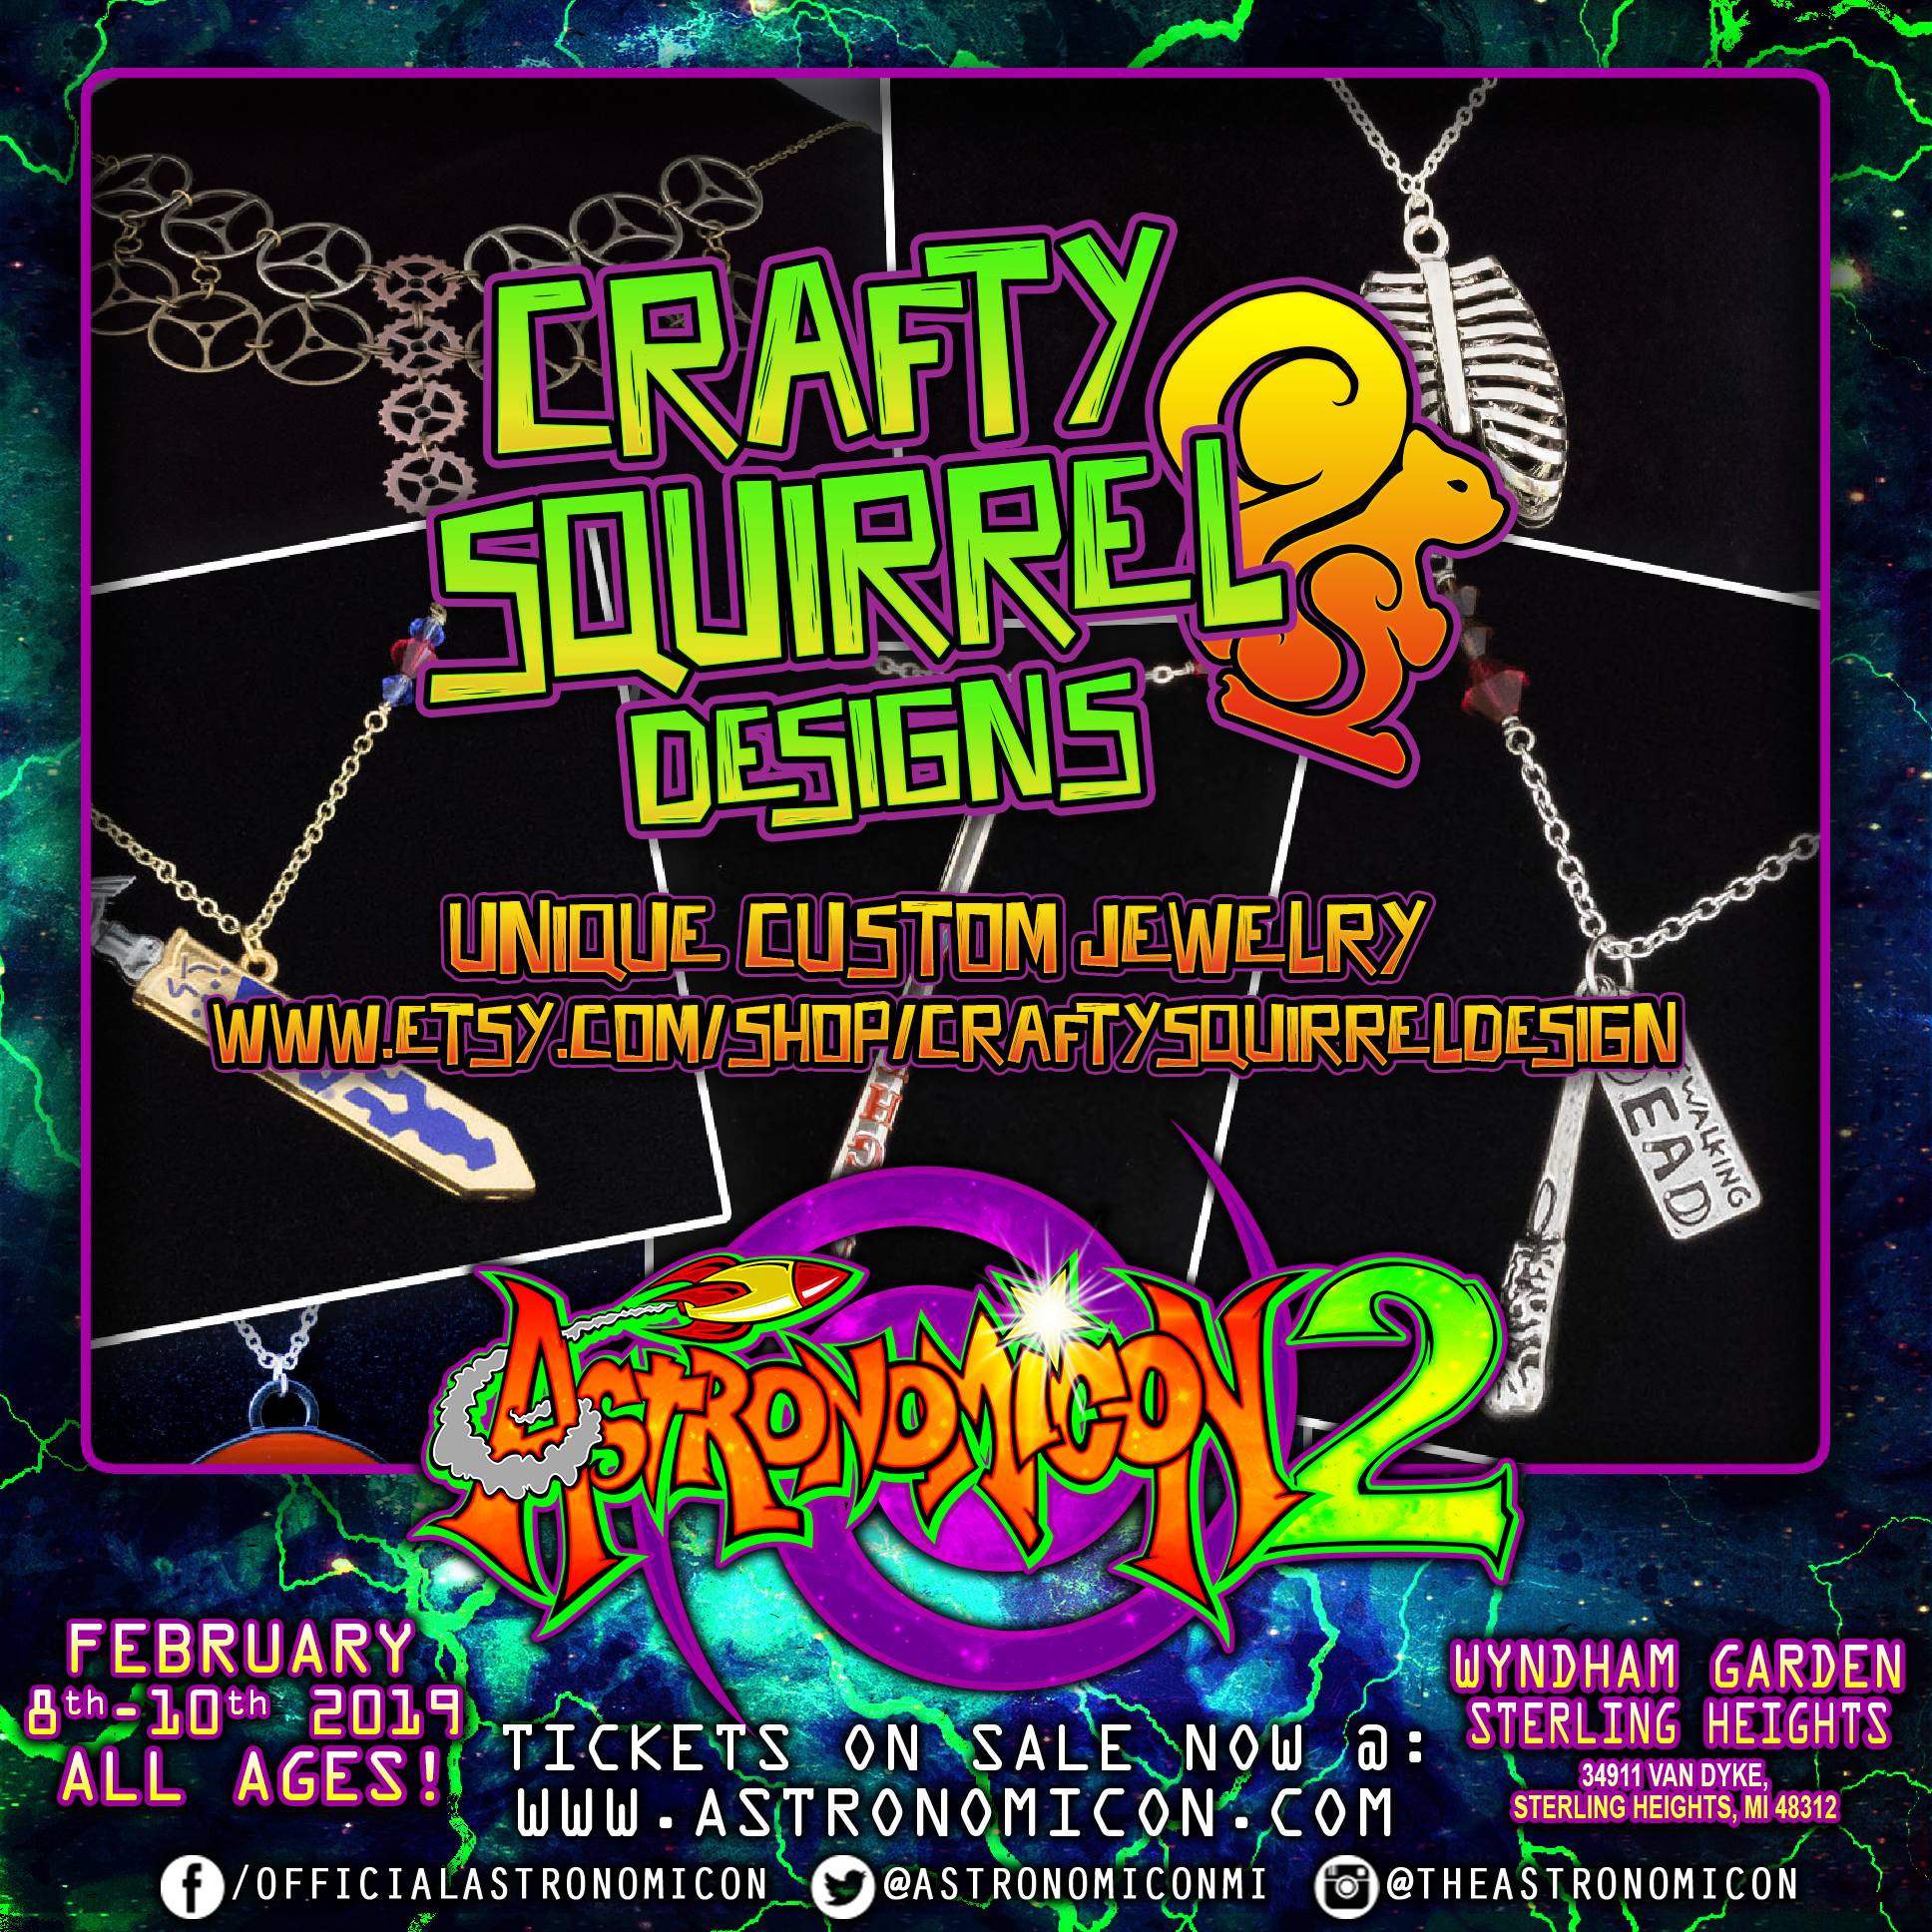 Astronomicon 2 Crafty Squirell IG Ad.png